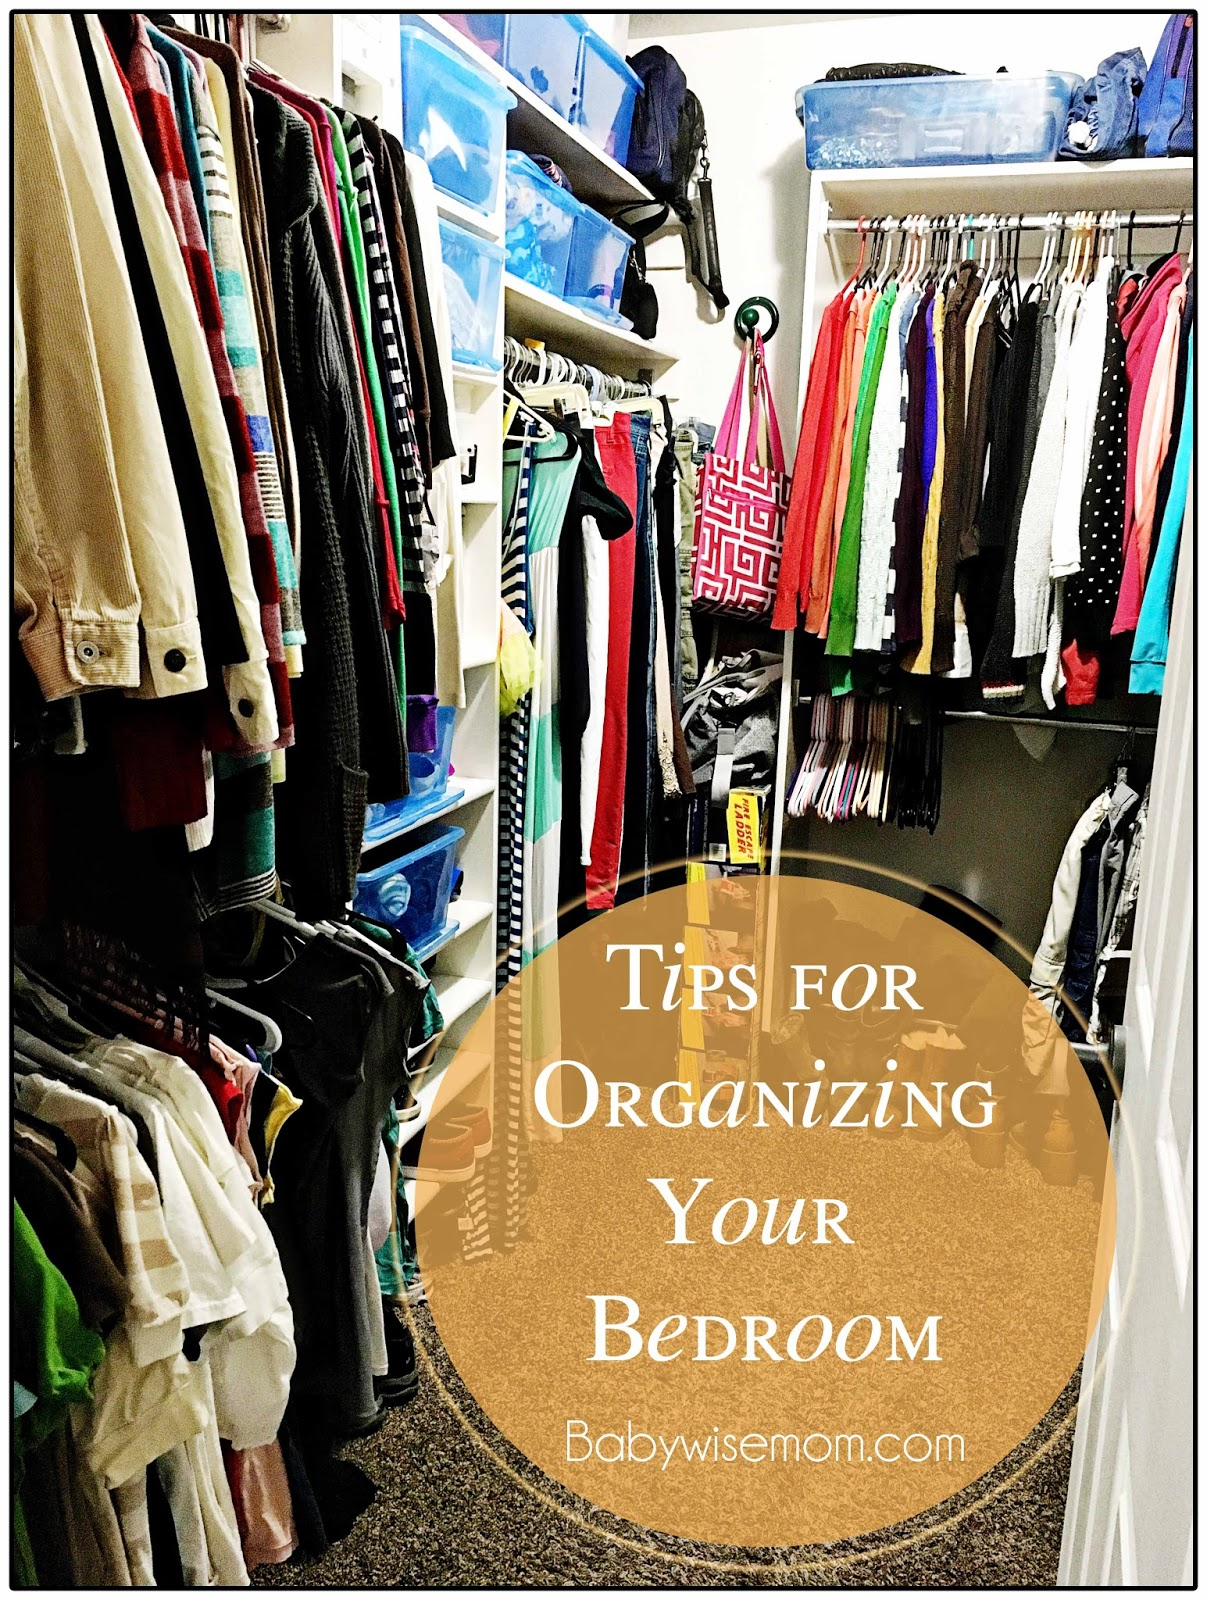 Tips For Organizing Your Bedroom Chronicles Of A Babywise Mom